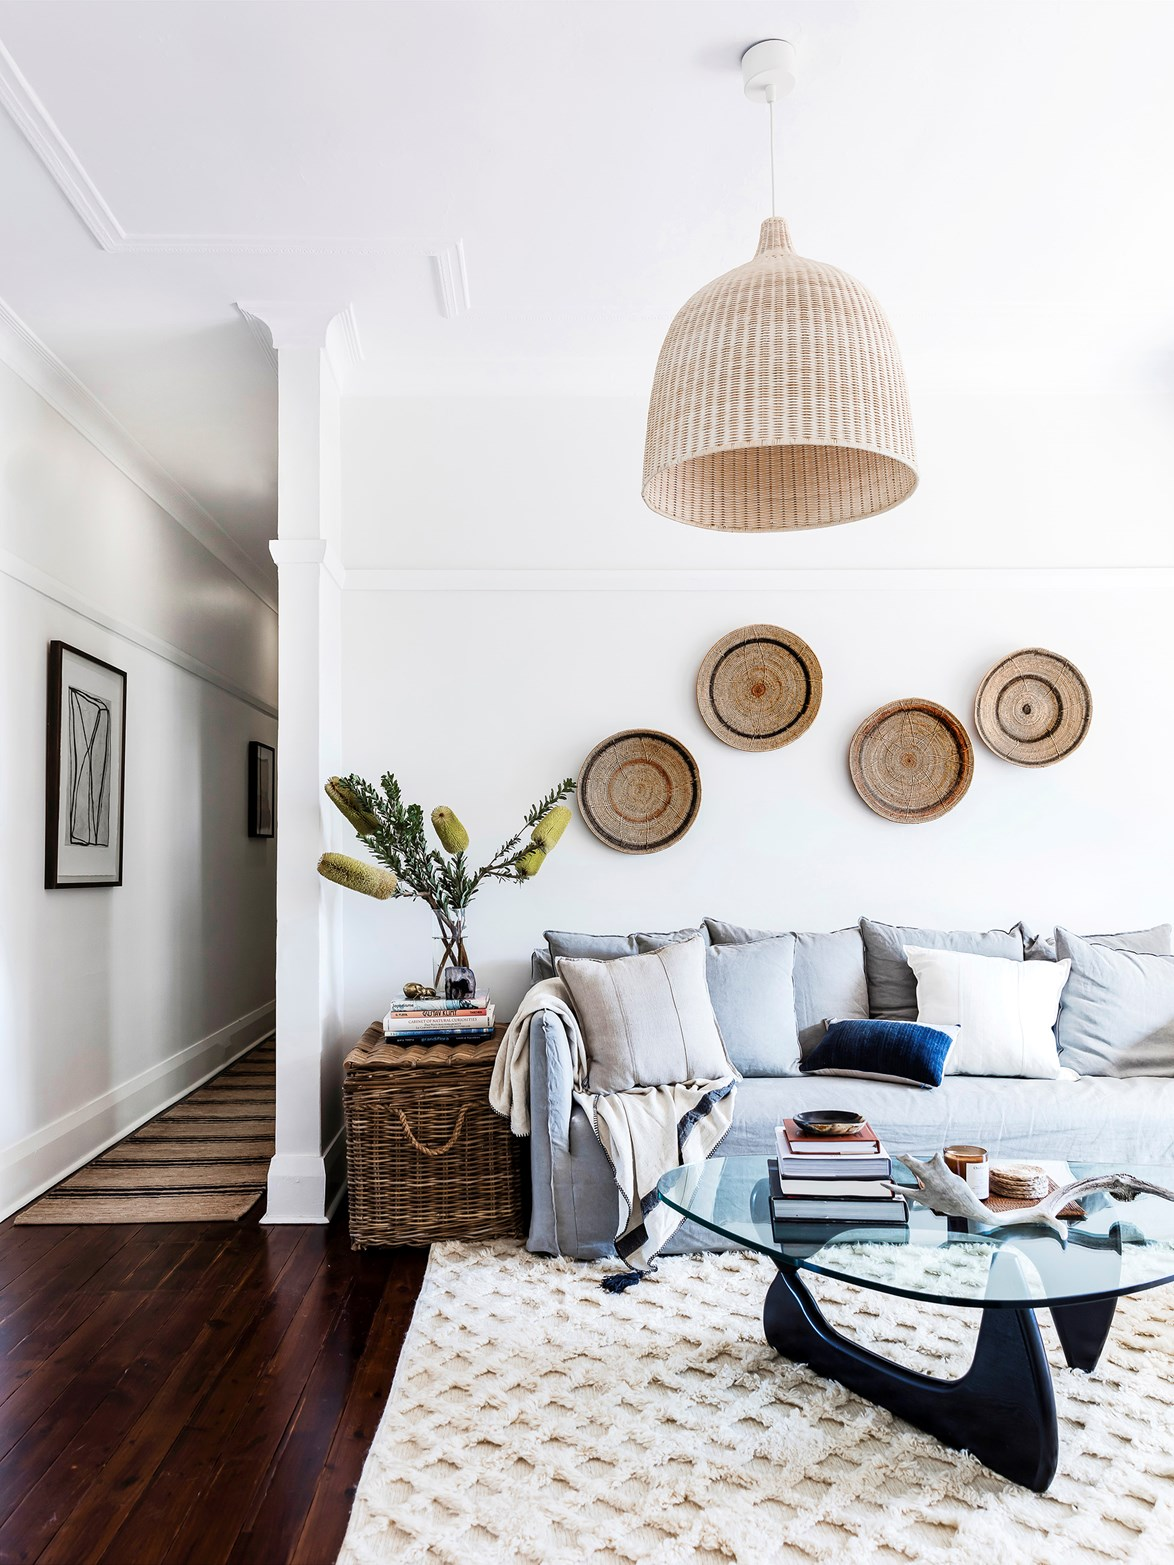 A collection of woven baskets on the living room wall is a nice alternative to a single piece of art.